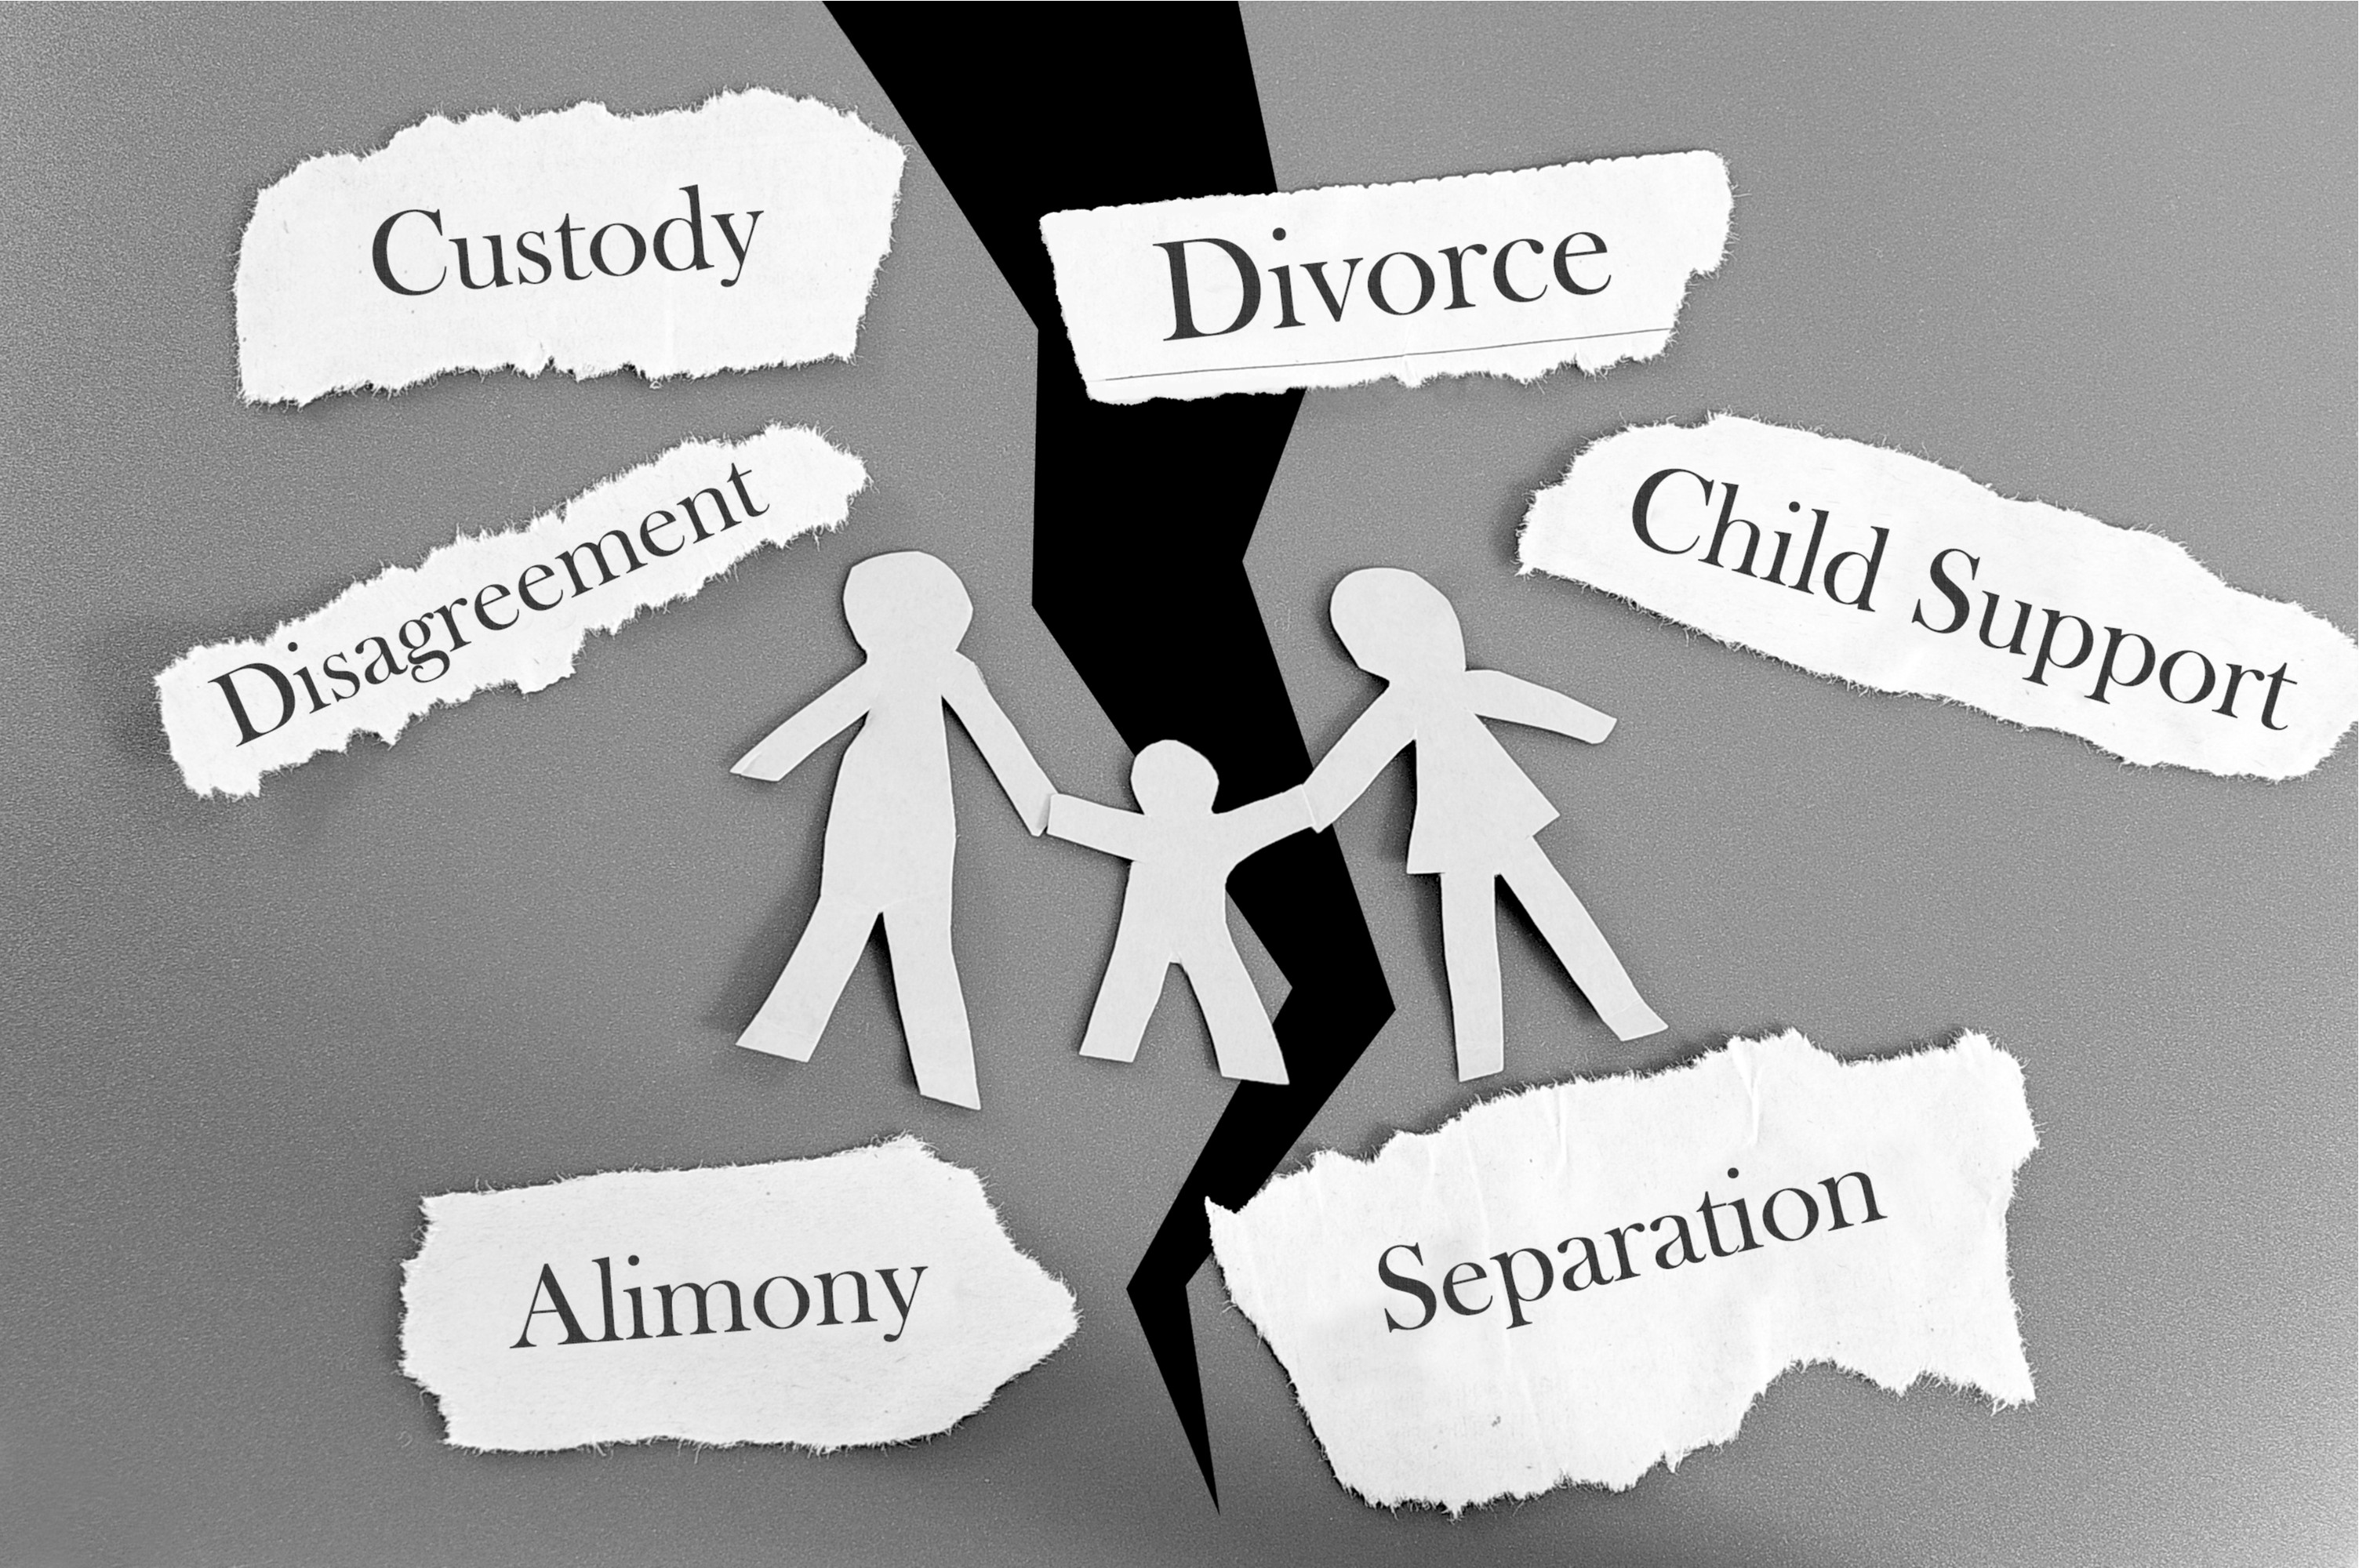 Family Law - Divorce, Child Support